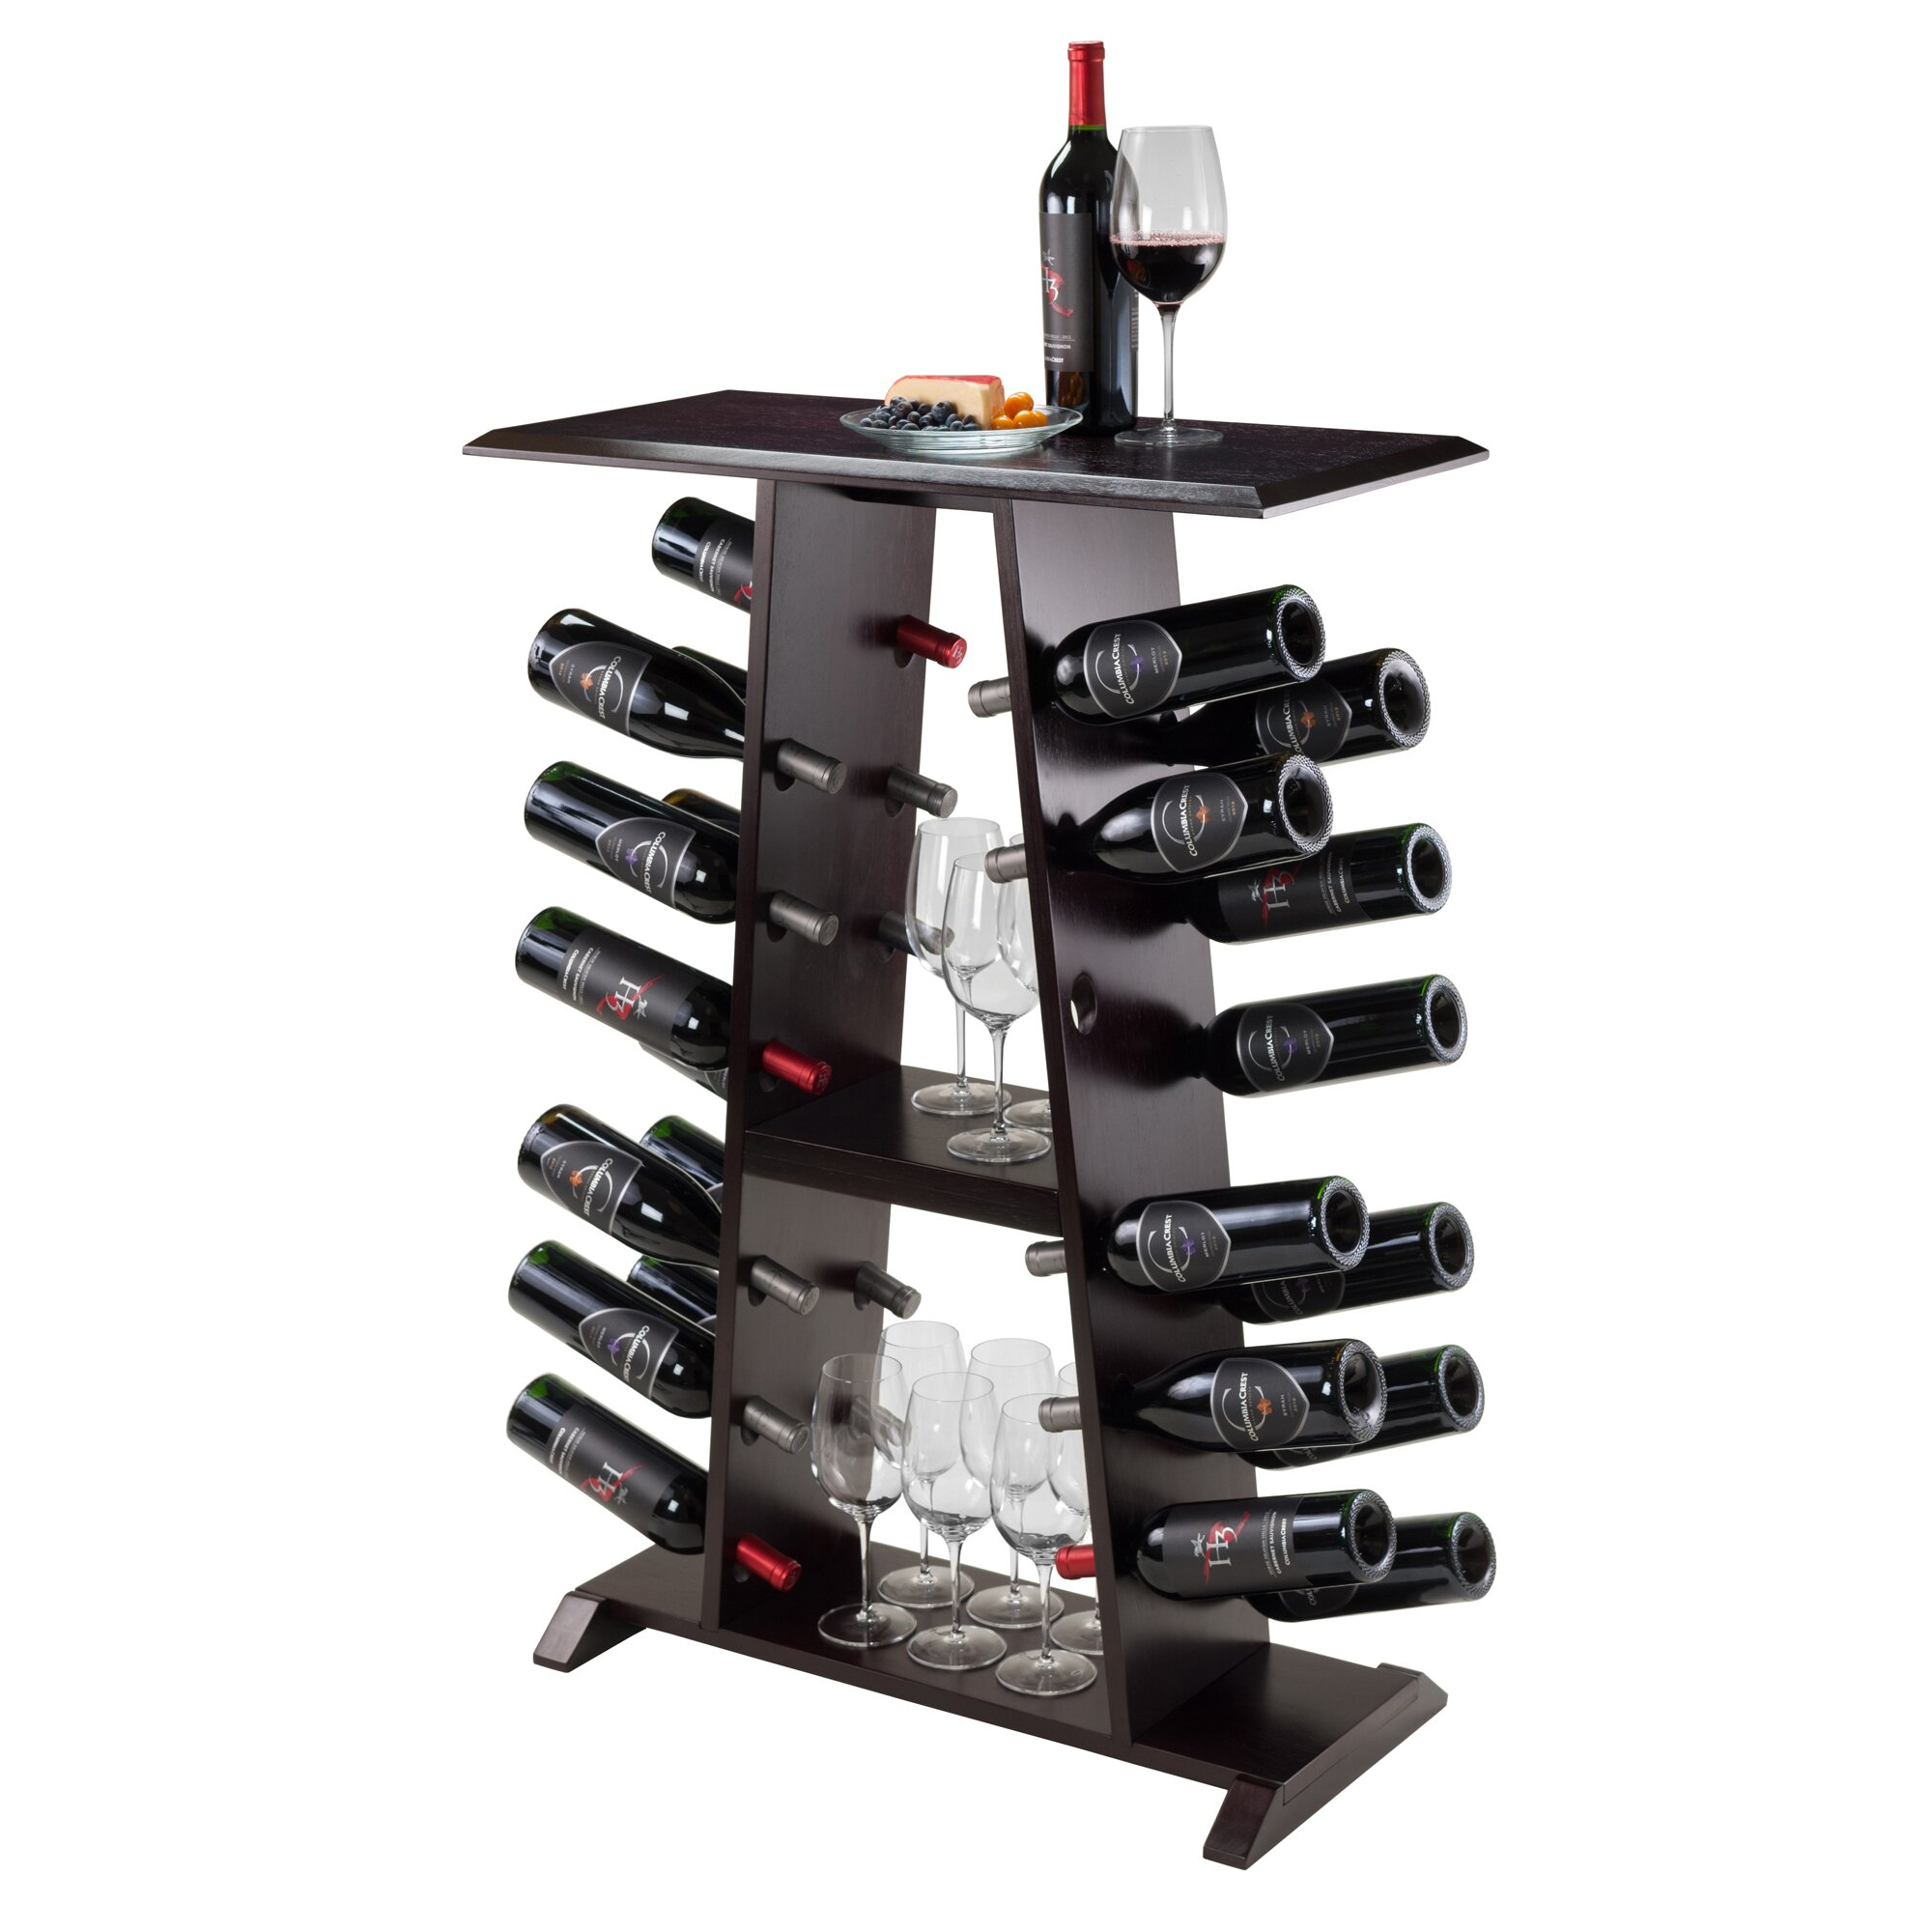 Symple stuff 24 bottle floor wine rack for Floor wine rack